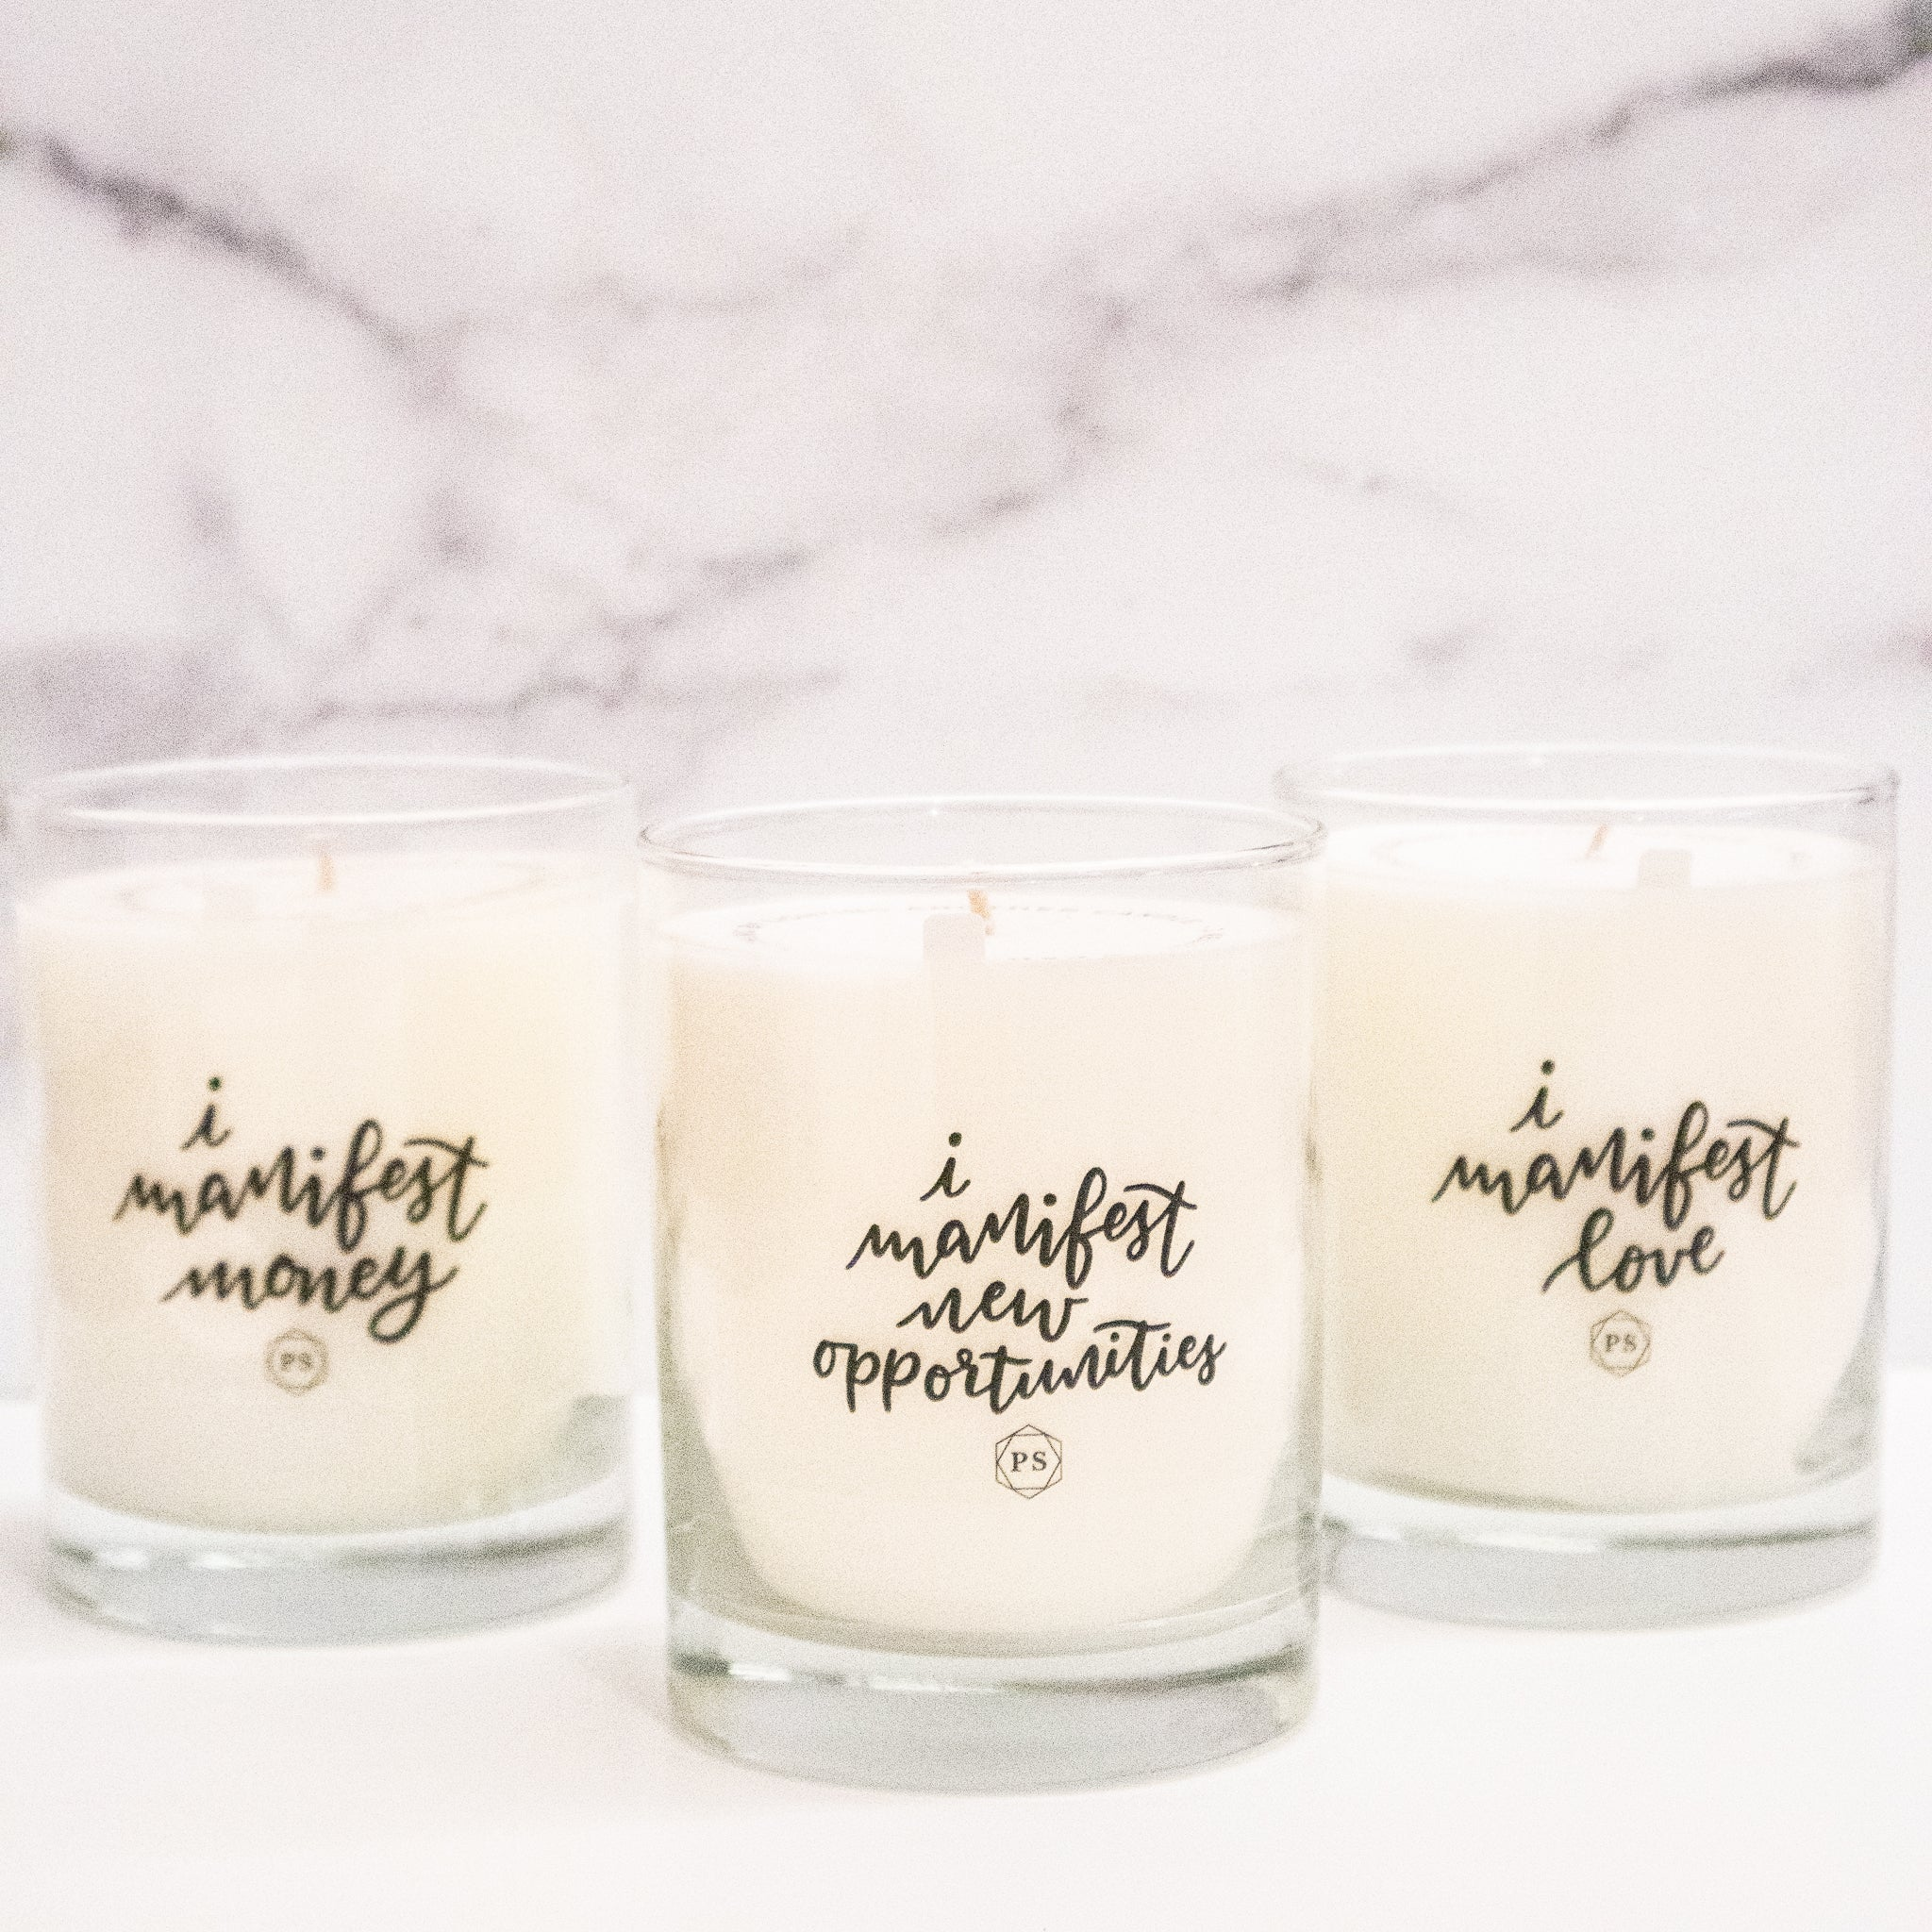 I Manifest New Opportunities Candle